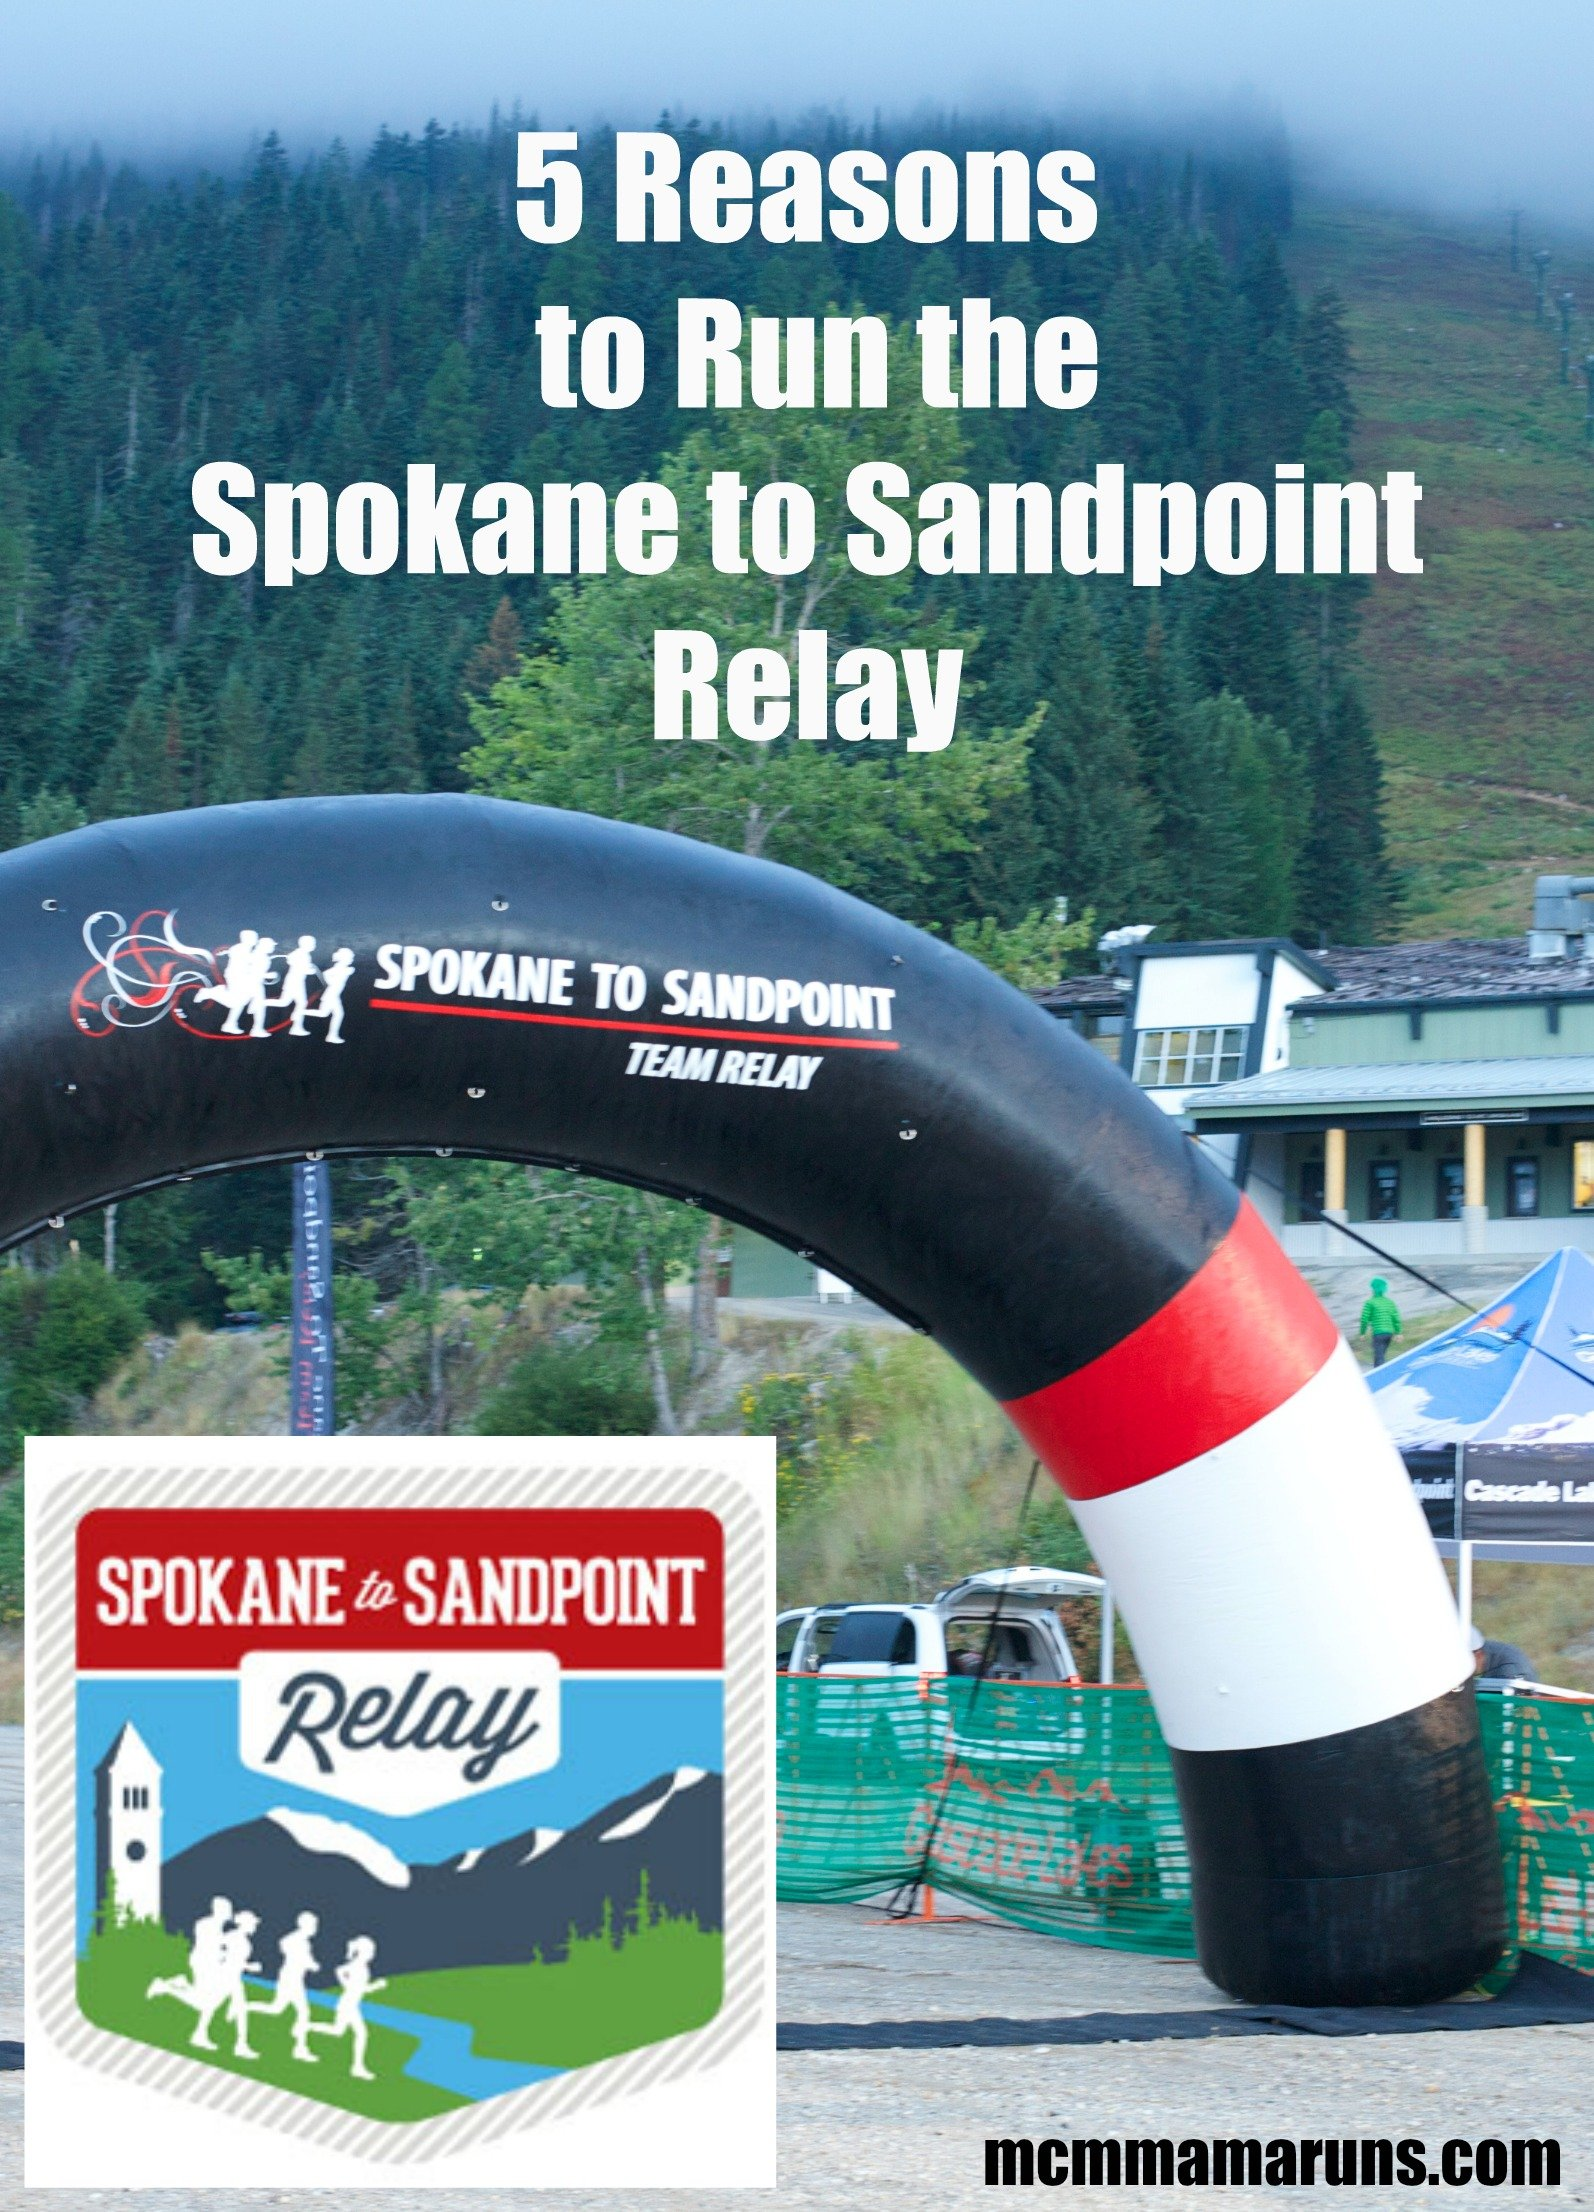 Reasons to Run Spokane to Sandpoint